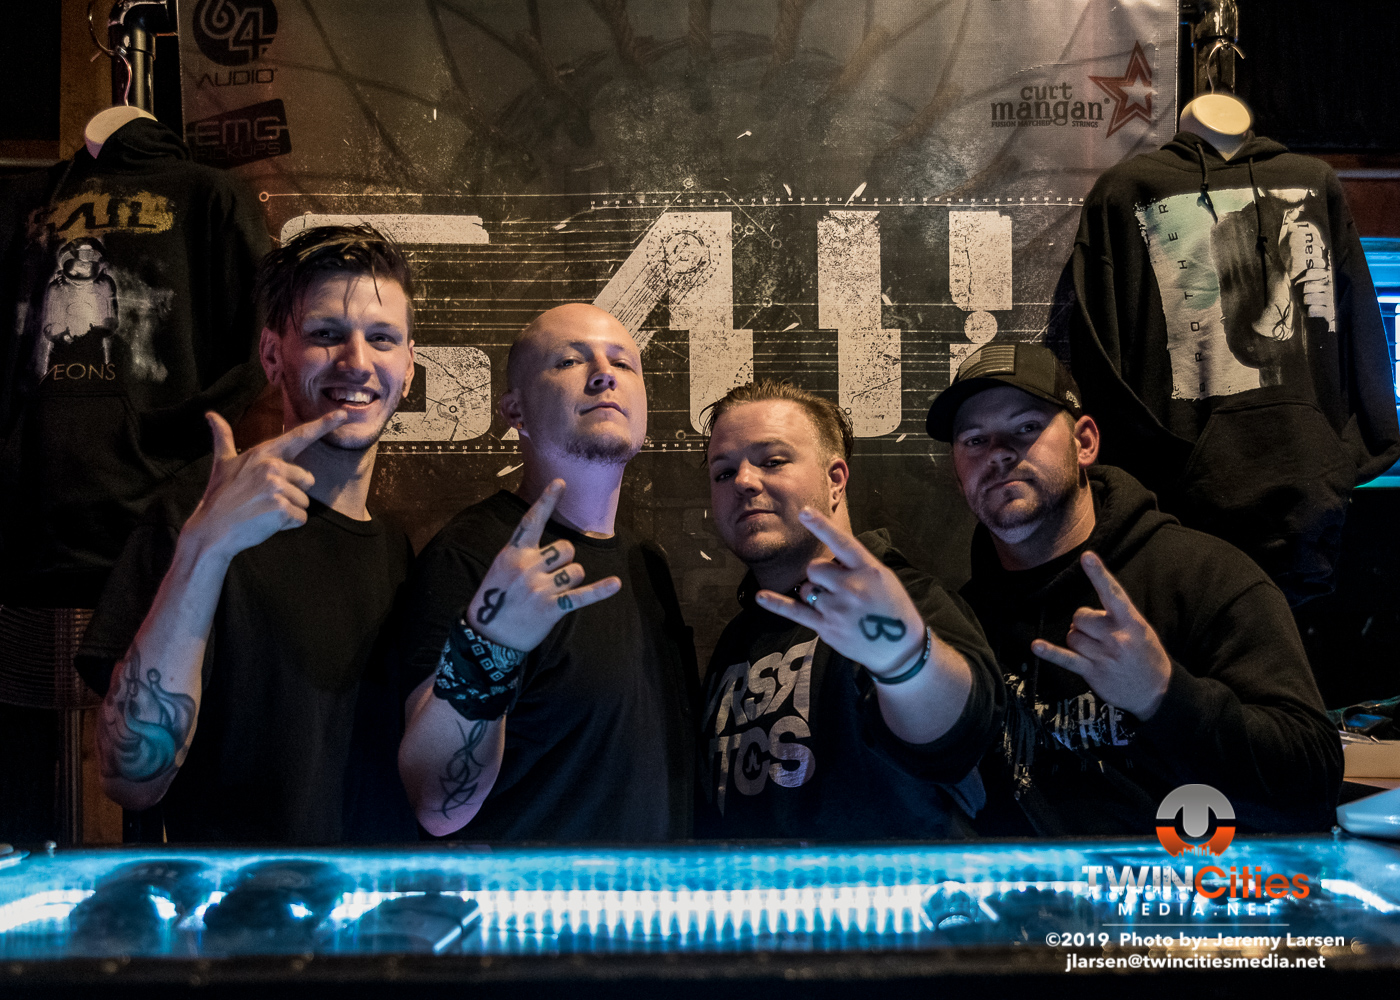 Saul-The-Whats-Up-Lounge-20190428-25